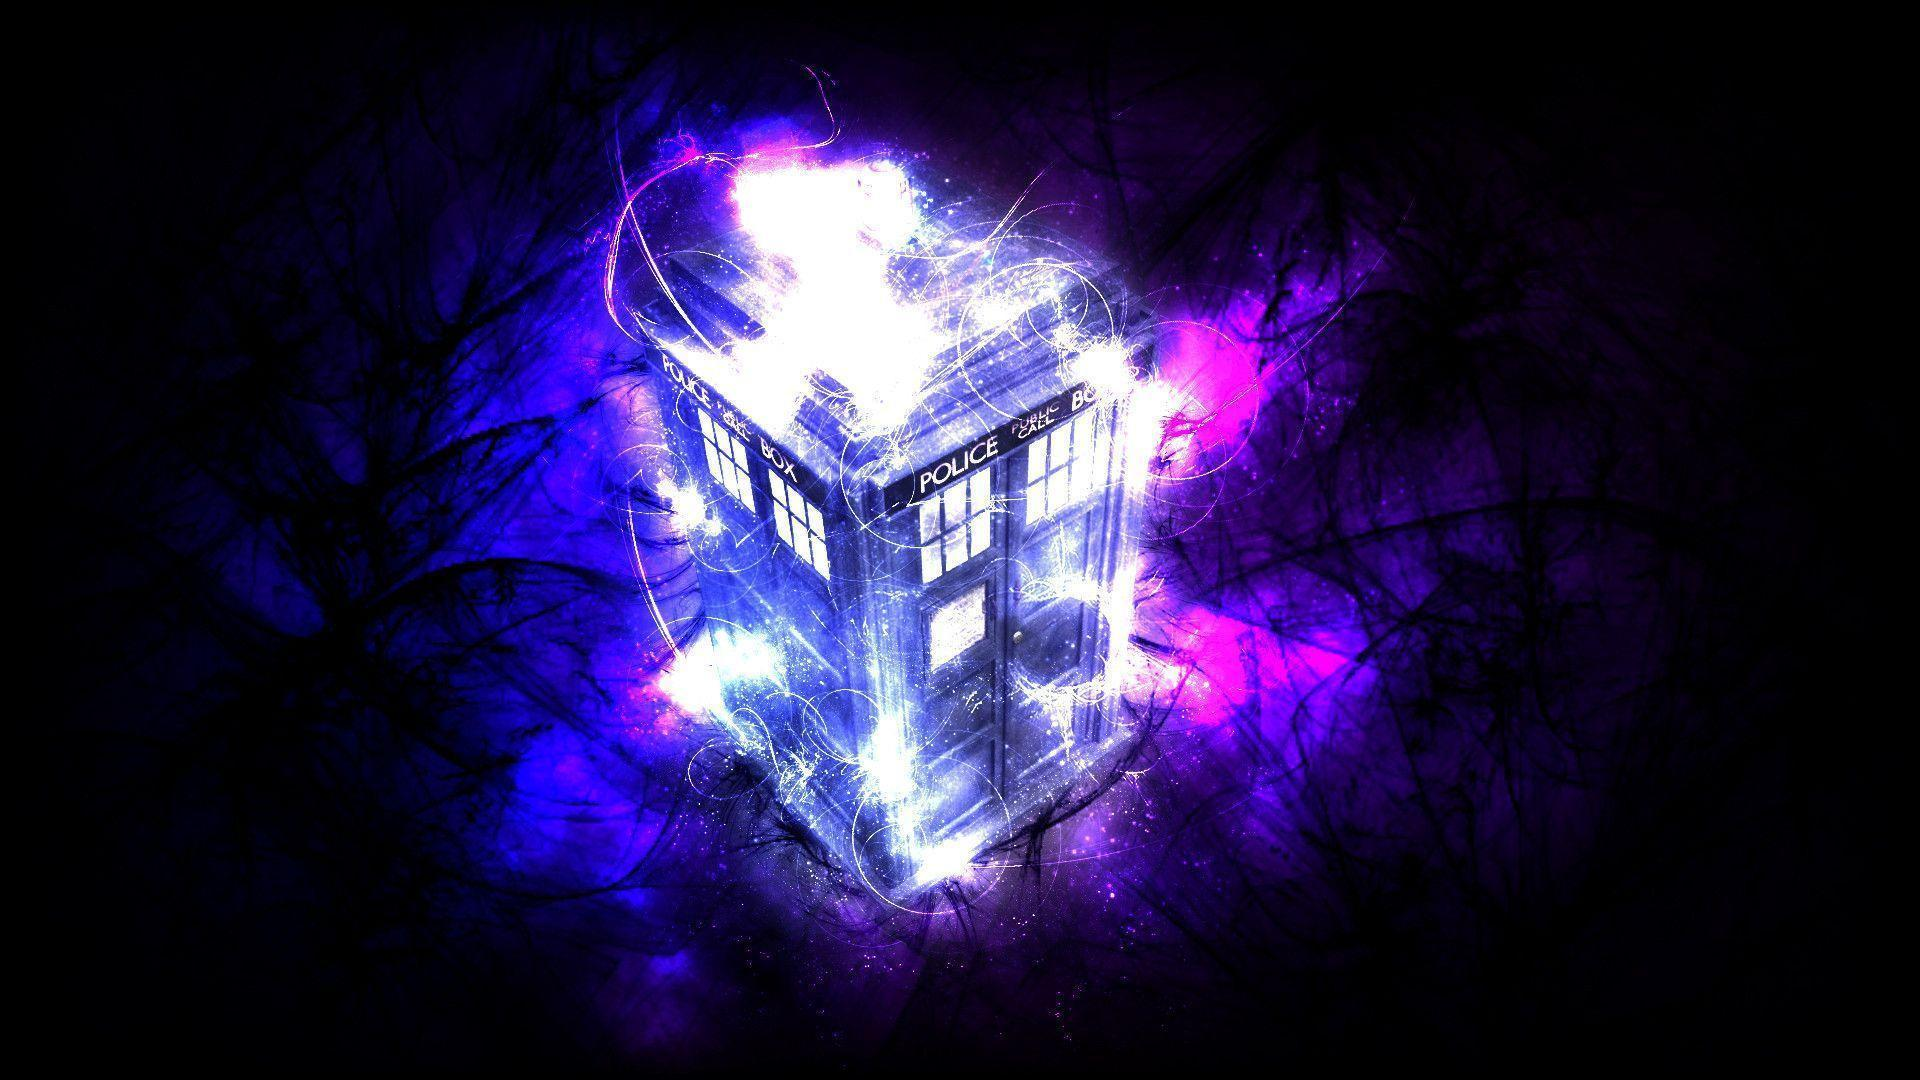 Doctor Who Hd Wallpapers Wallpaper Cave